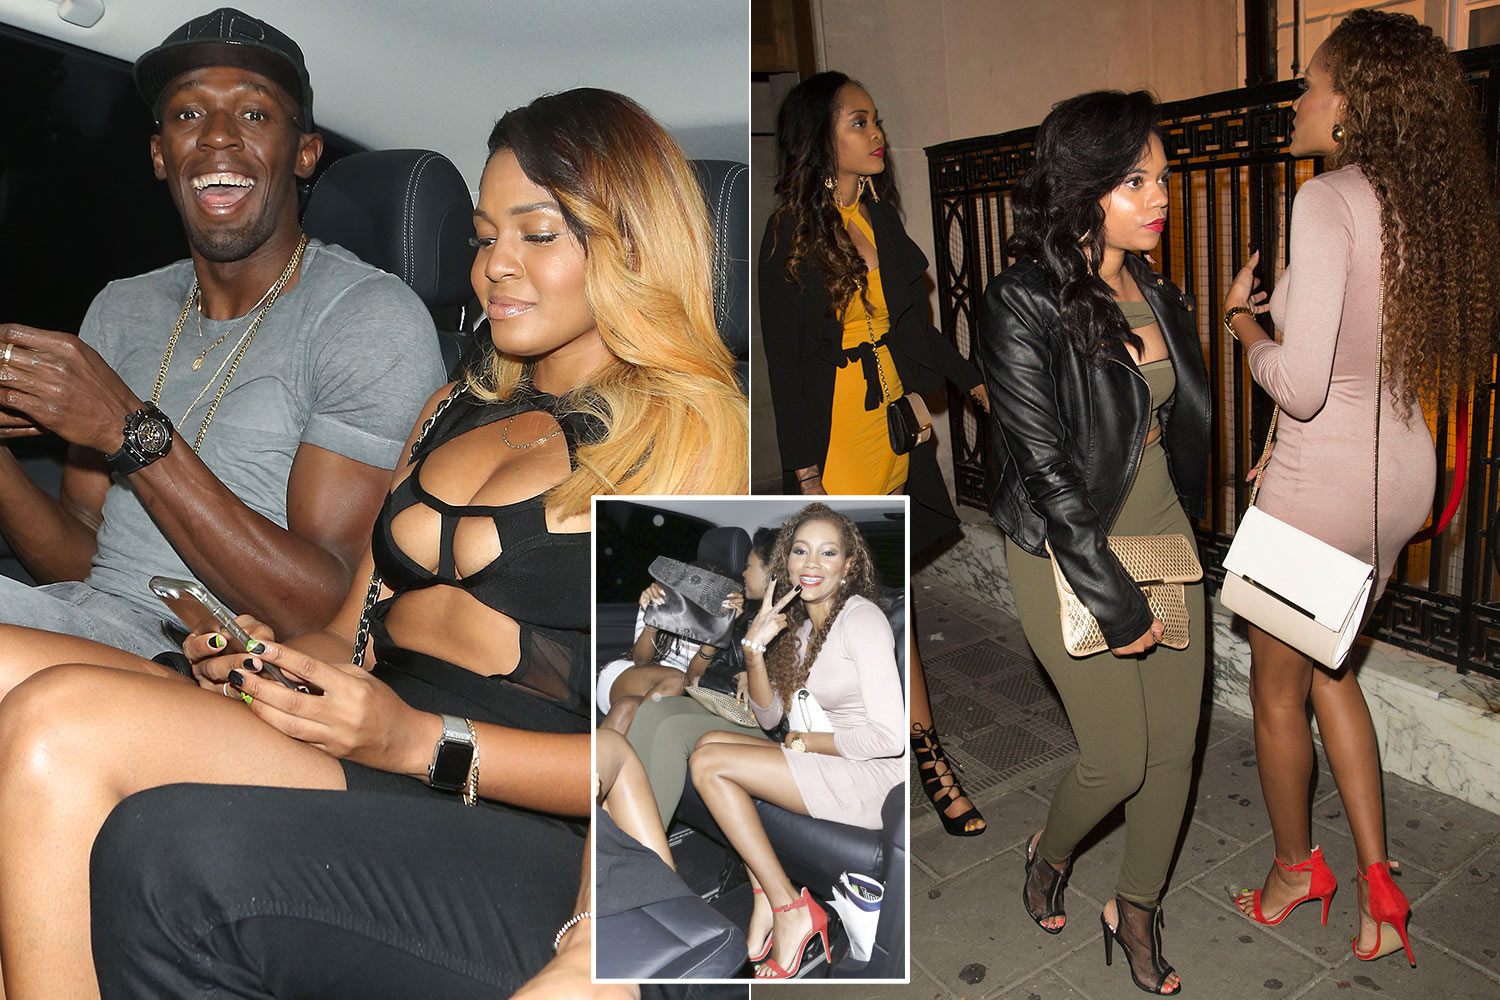 Usain Bolt pictured partying with busty women at Mayfair nightclub Tape Club